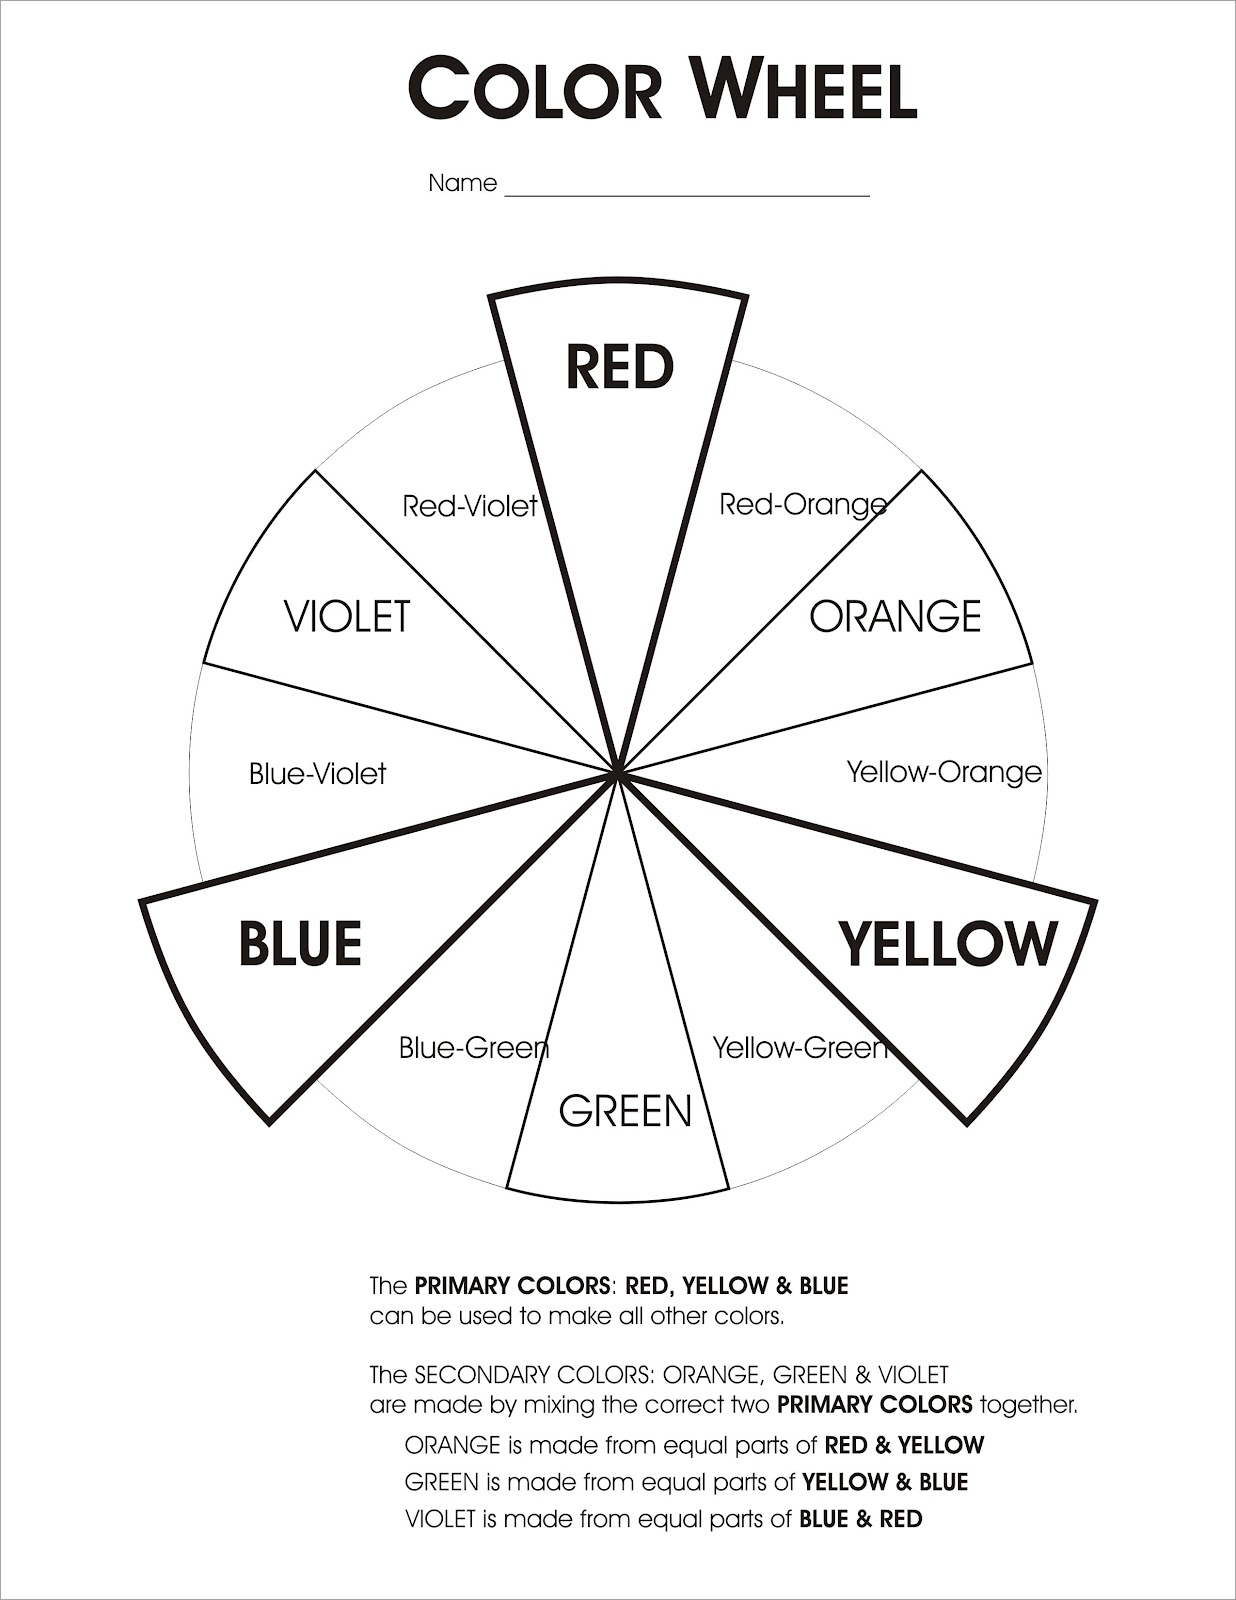 color wheel | Worksheets, Coloring Pages, and other Random Print-outs ...